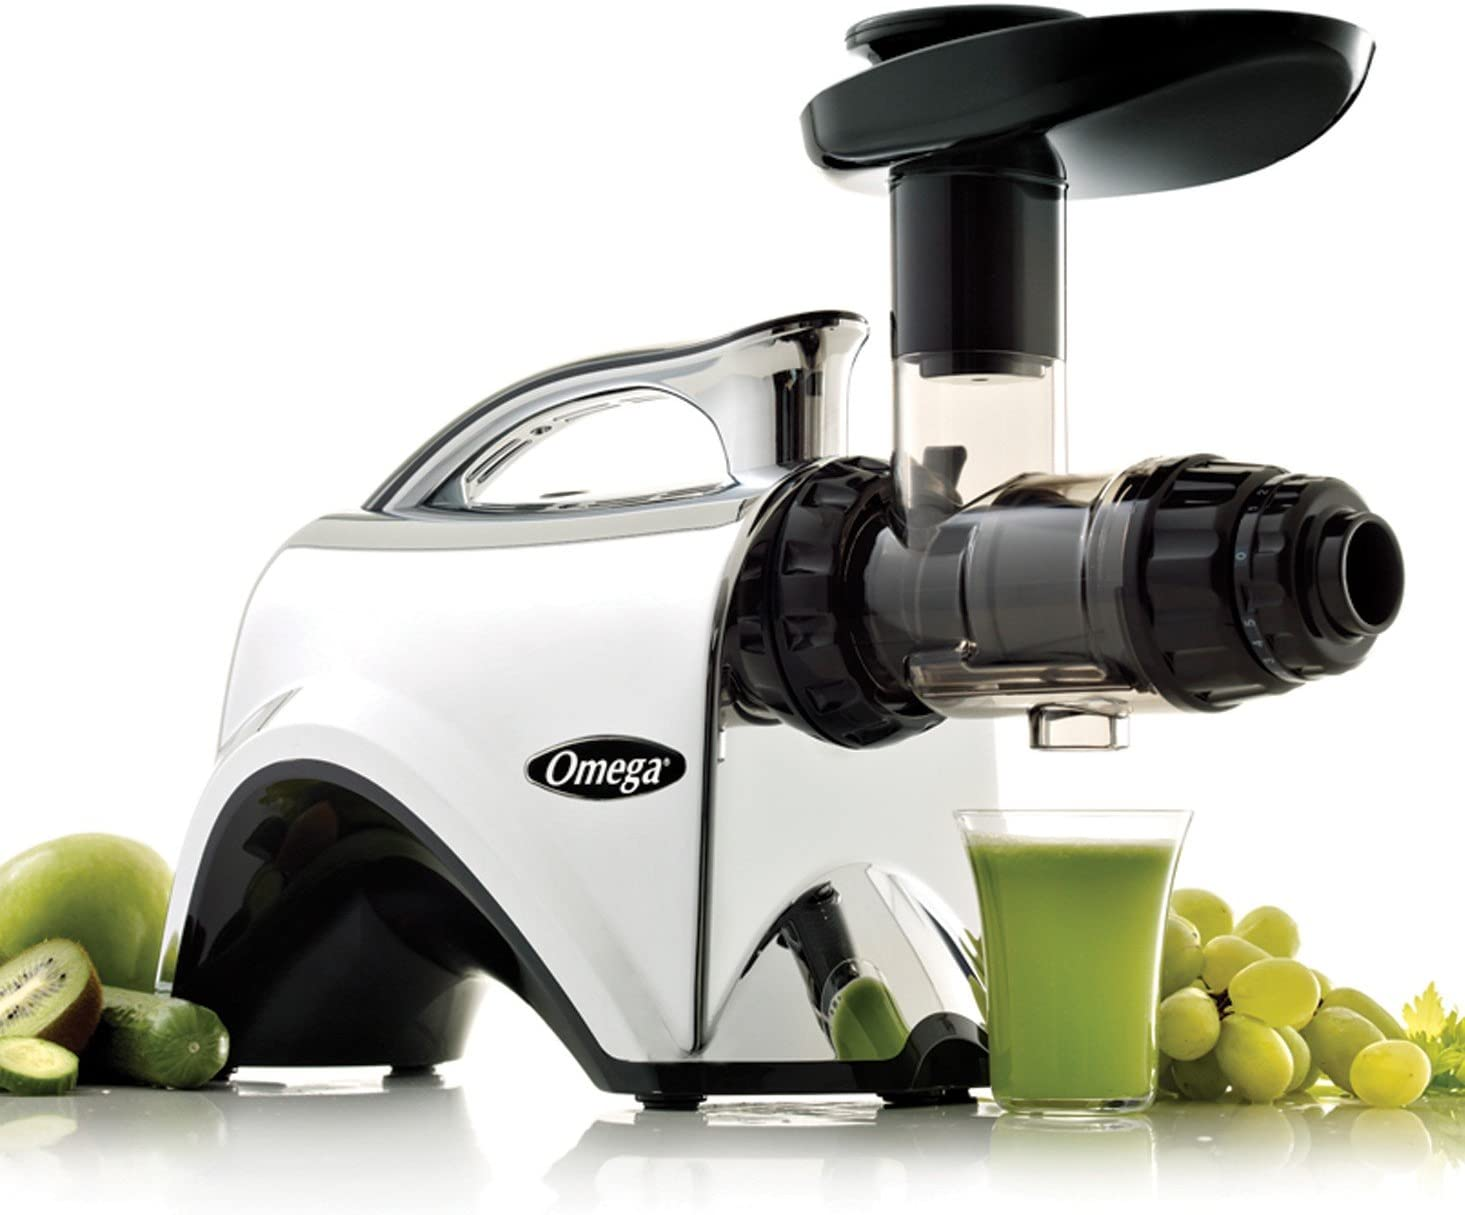 Best juicers for tomatoes: best overall: Omega NC900HDC